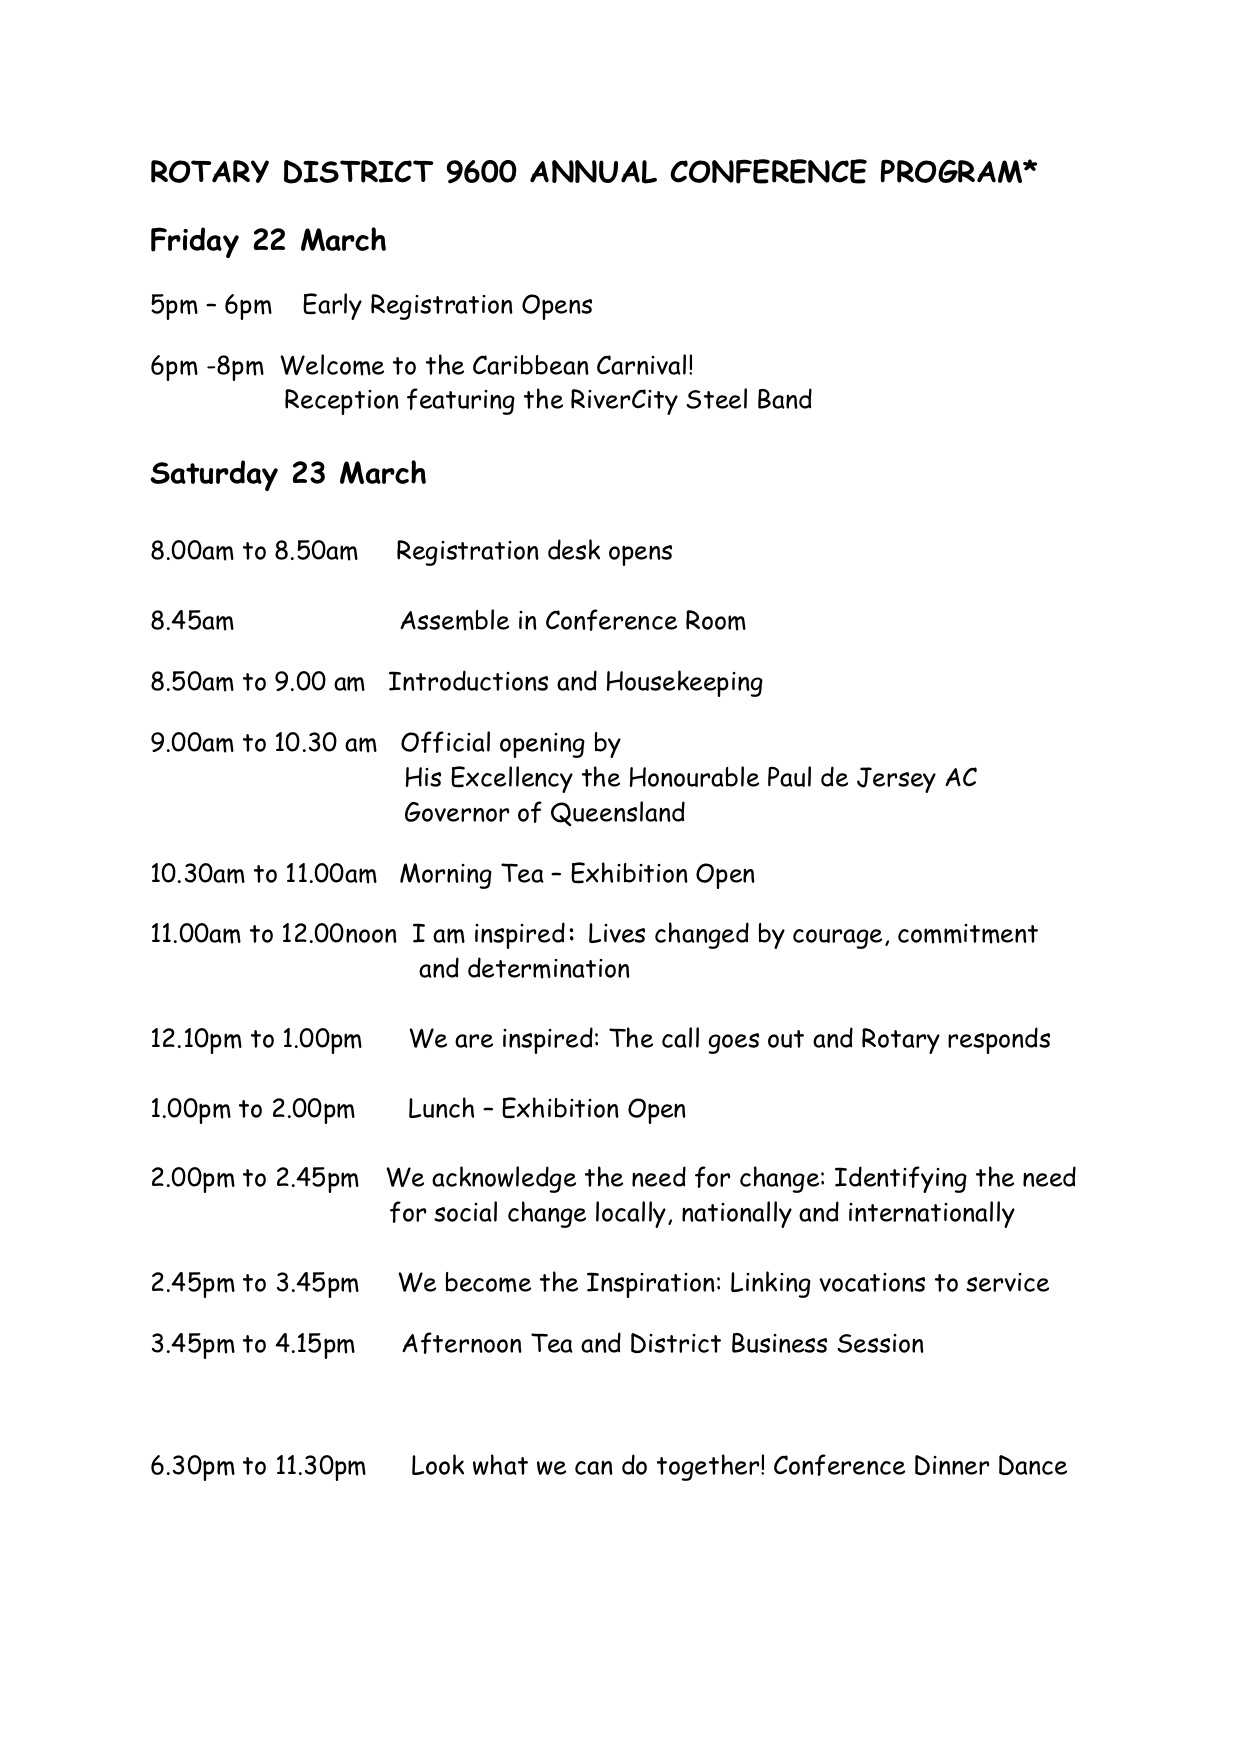 ROTARY DISTRICT 9600 ANNUAL CONFERENCE PROGRAM 27 FEB 1.jpg